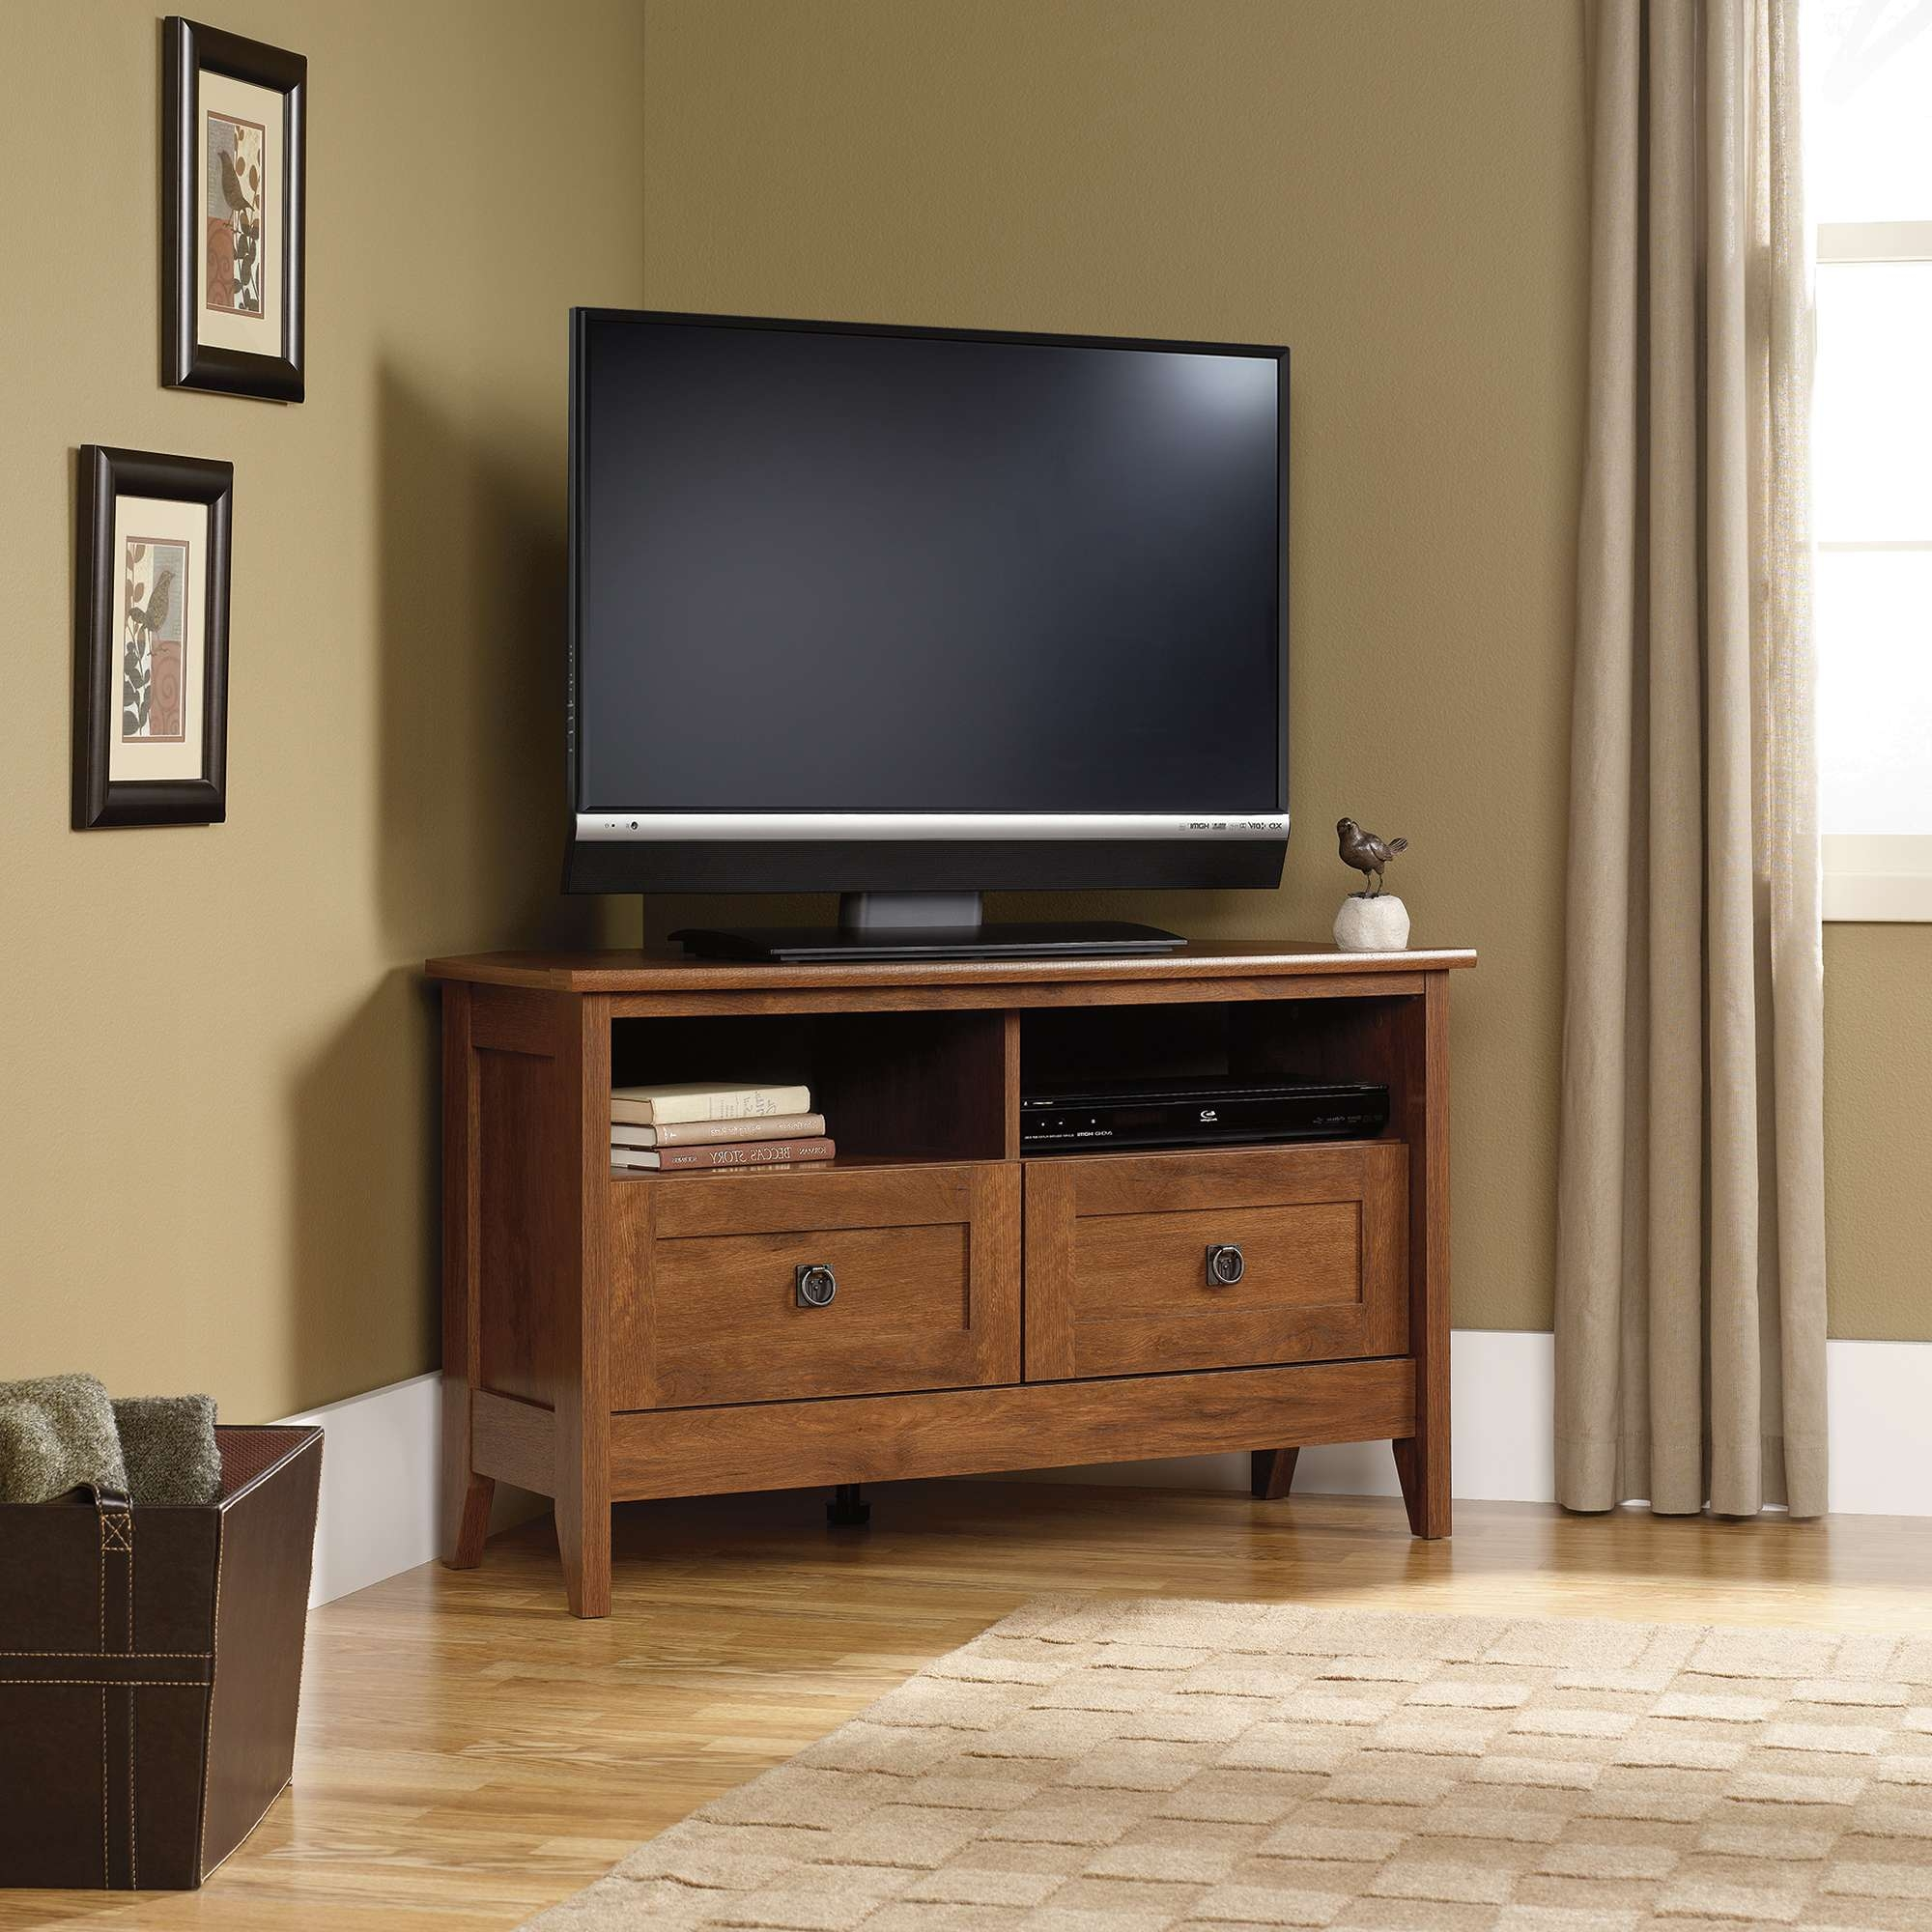 Sauder Select | Corner Tv Stand | 410627 | Sauder Throughout Corner Wooden Tv Stands (View 10 of 15)